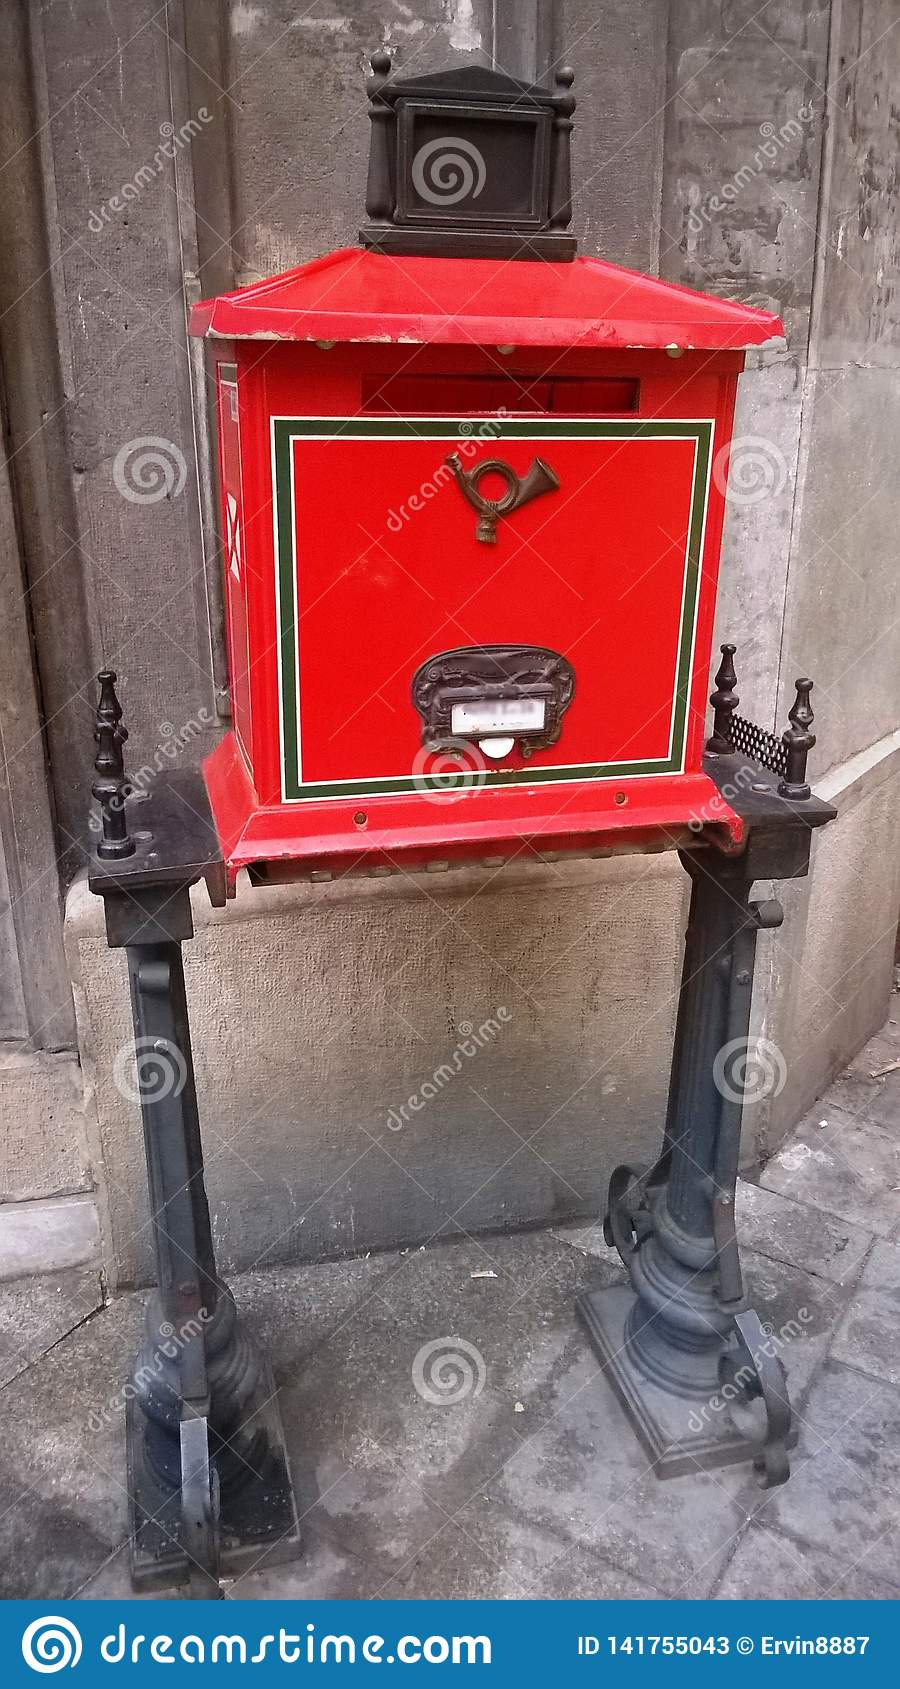 Traditioneller alter roter Postbox Retro- Art